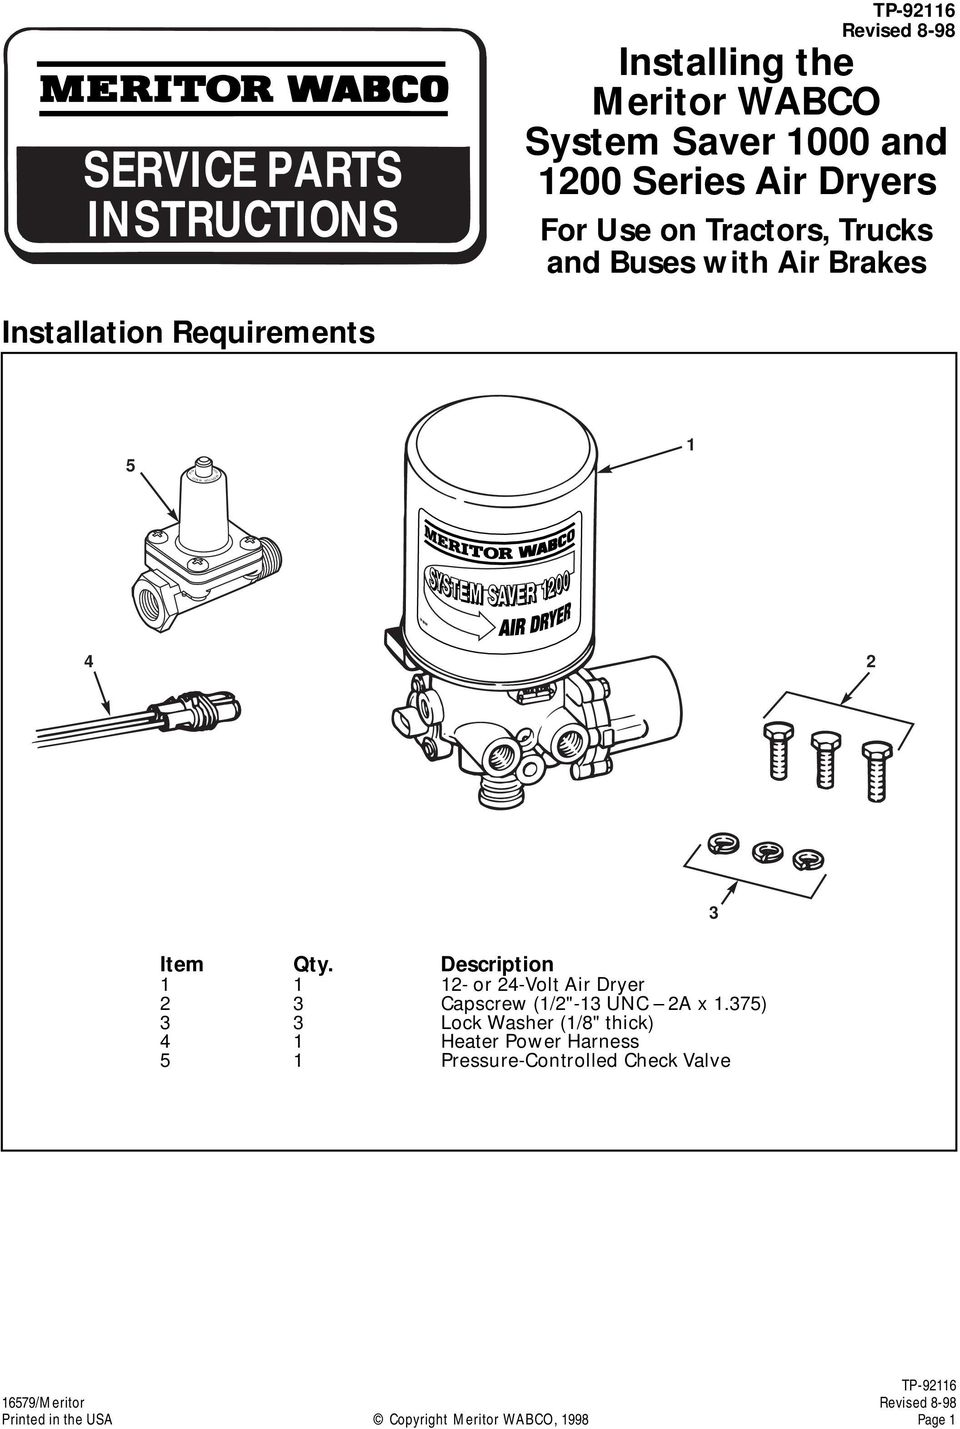 SERVICE PARTS INSTRUCTIONS - PDF on